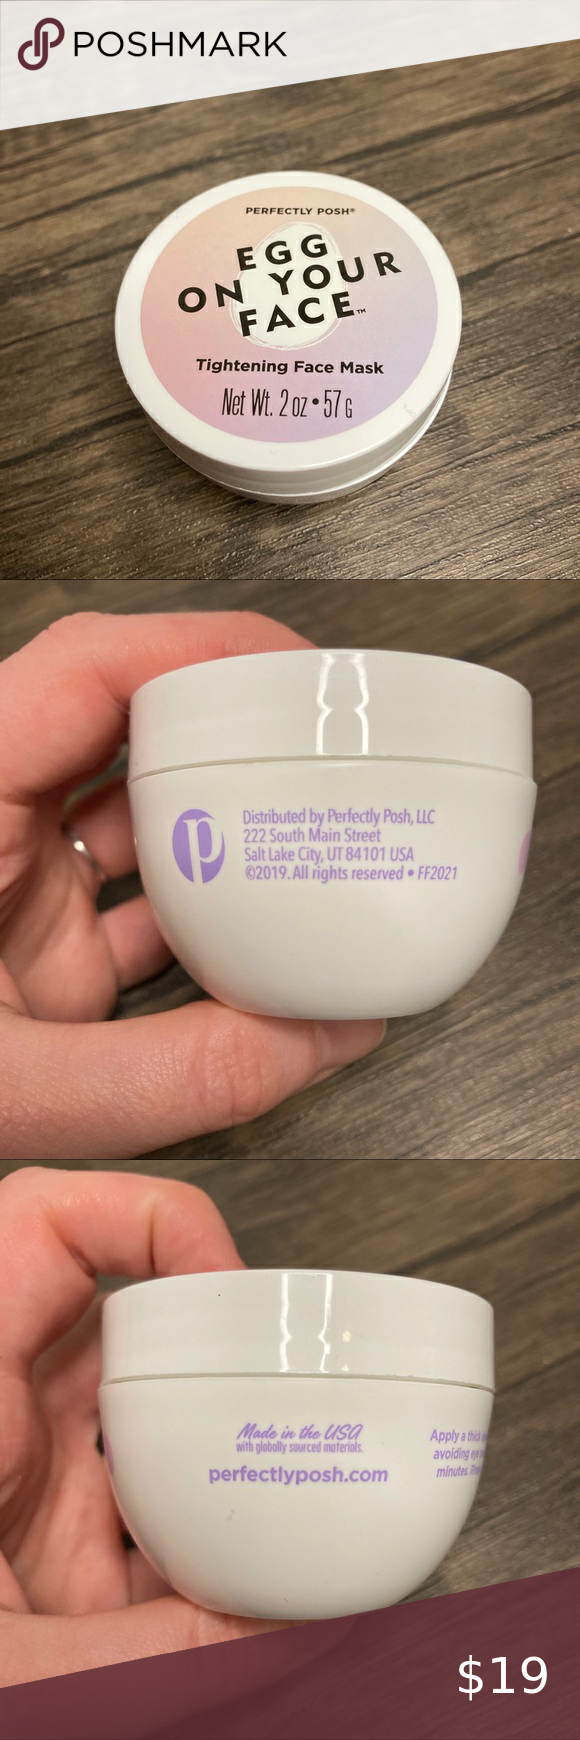 Photo of Perfectly Posh Egg on Your Face Tightening Mask